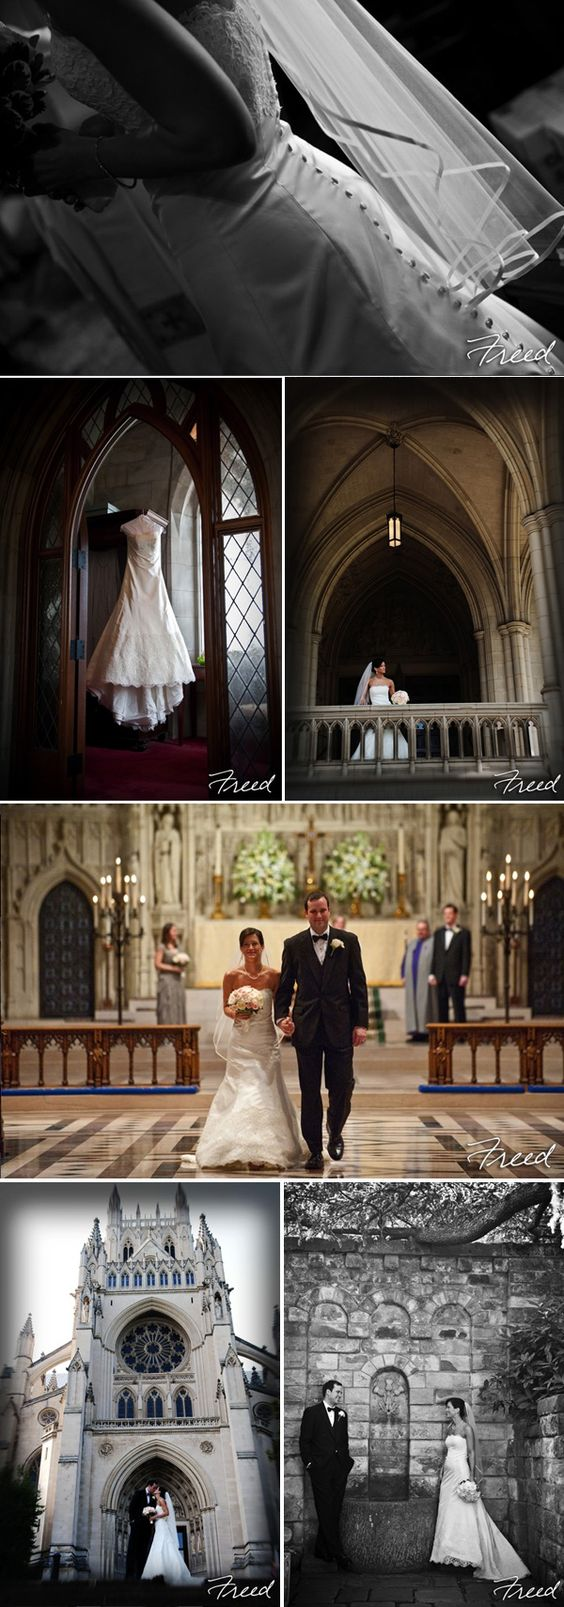 Wedding Ceremony at The National Cathedral Freed Photography